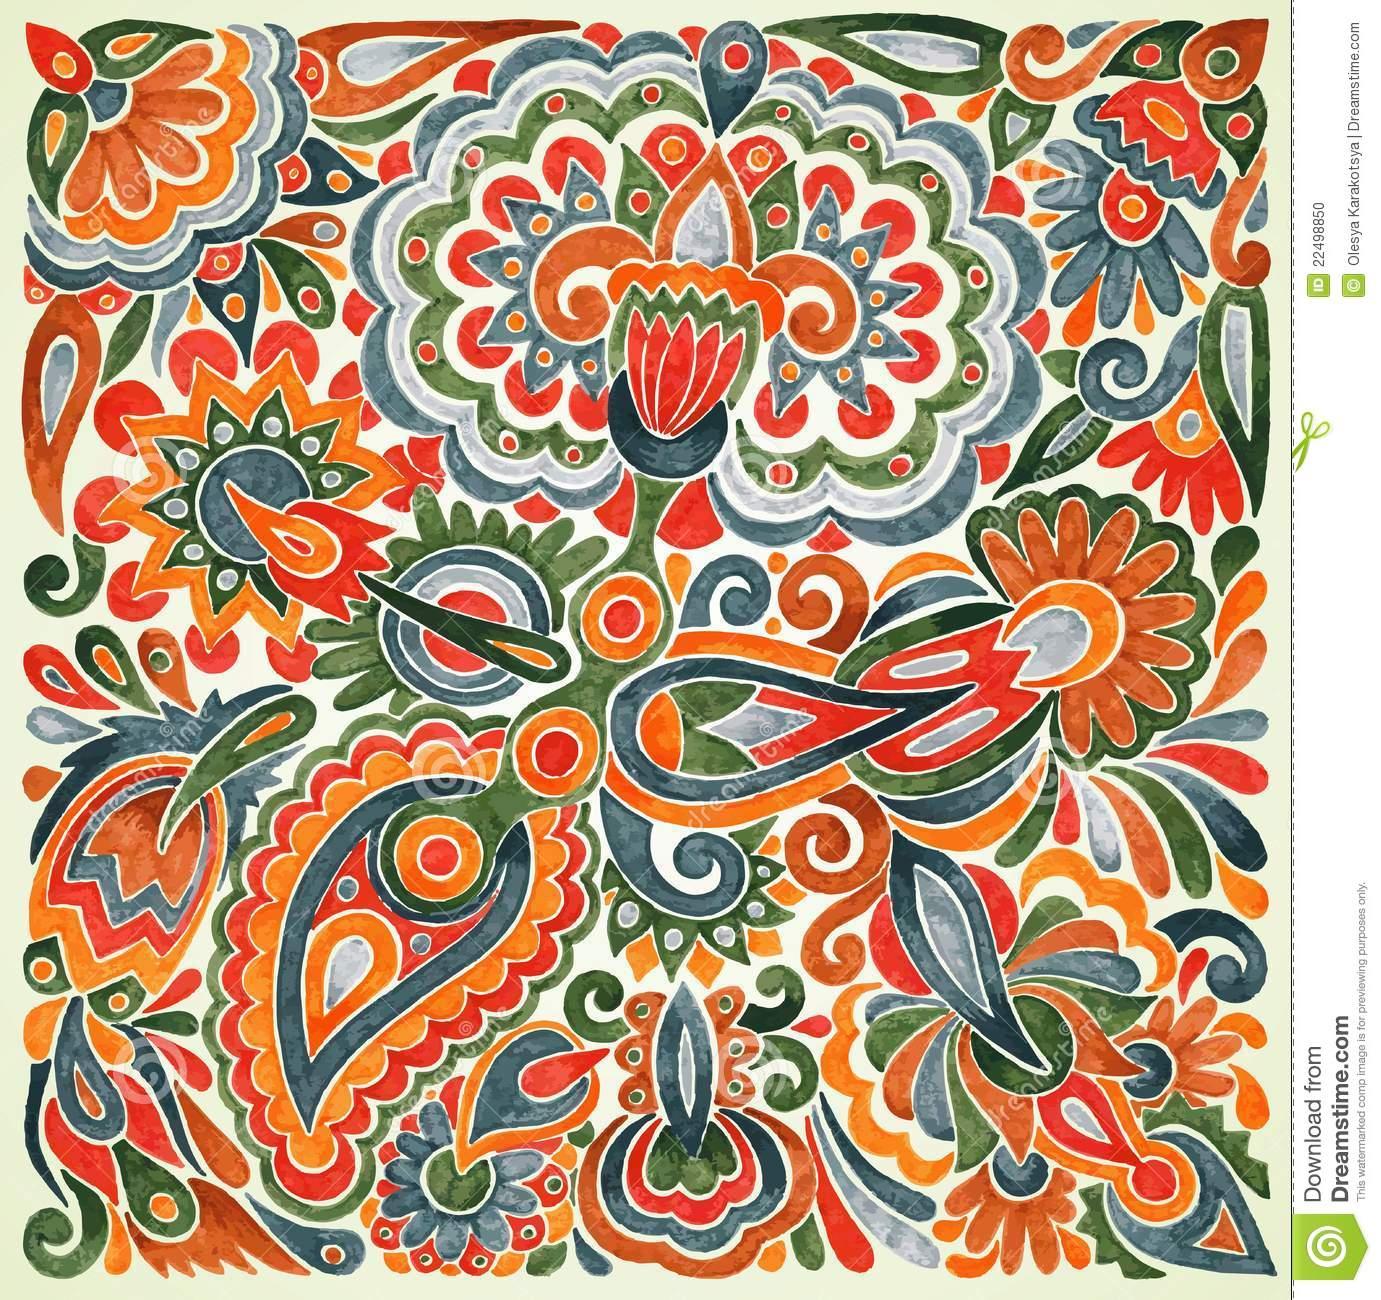 Floral ethnic design stock vector. Image of ethnicity